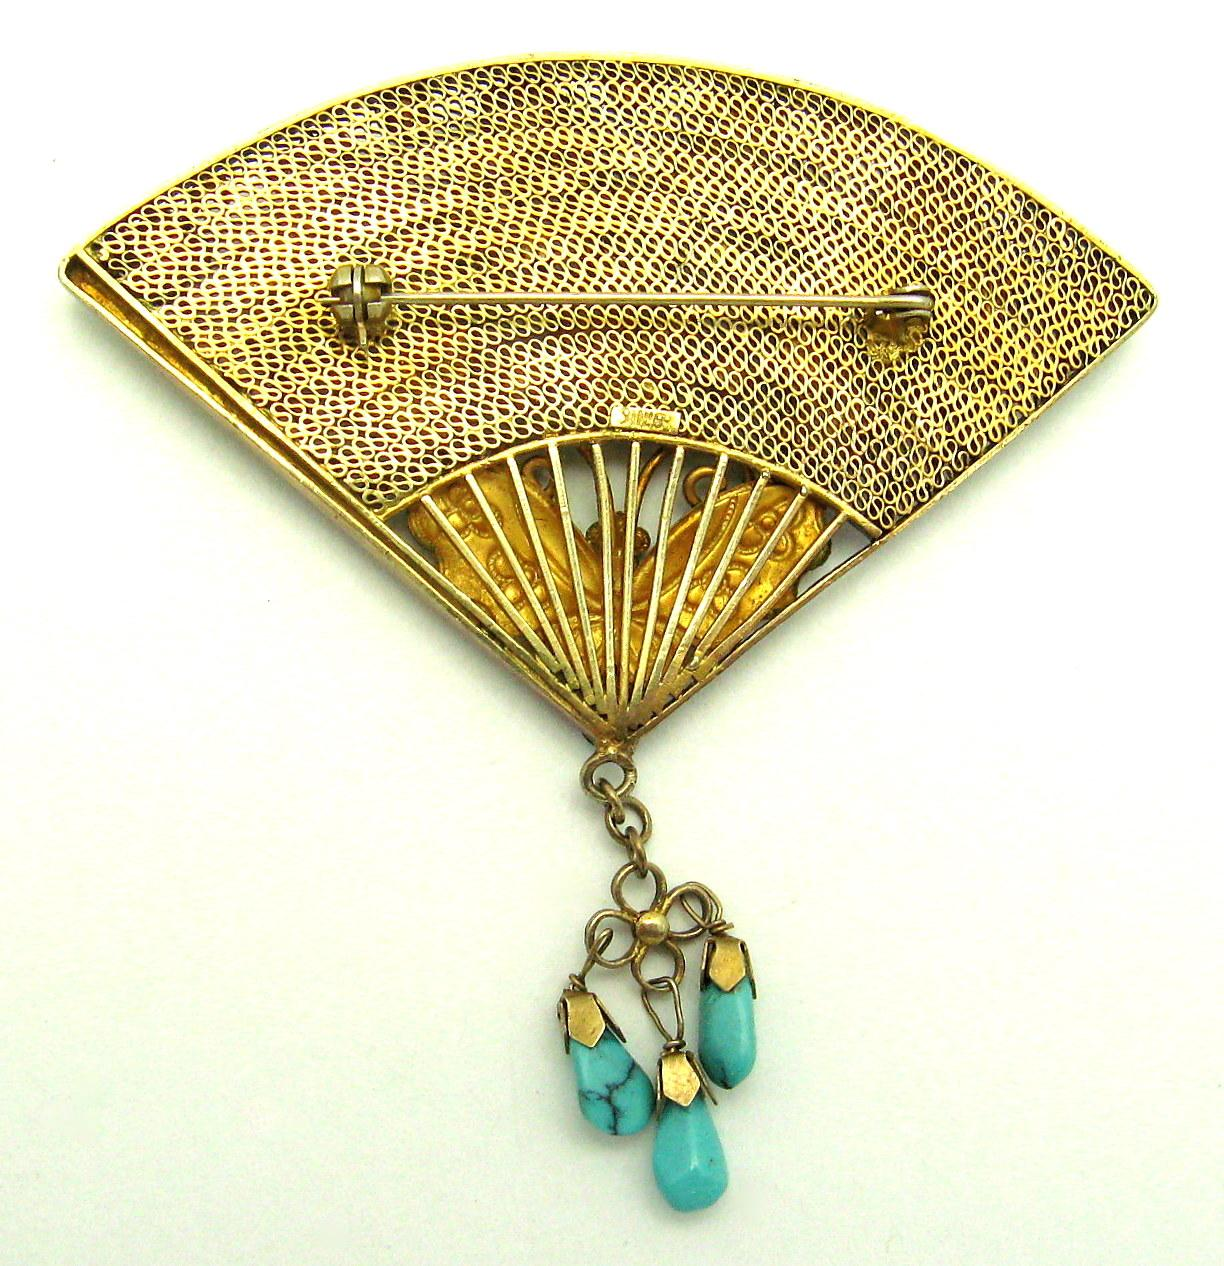 art deco chinese silver cloisonne enamel butterfly fan brooch from rubylane sold on ruby lane. Black Bedroom Furniture Sets. Home Design Ideas